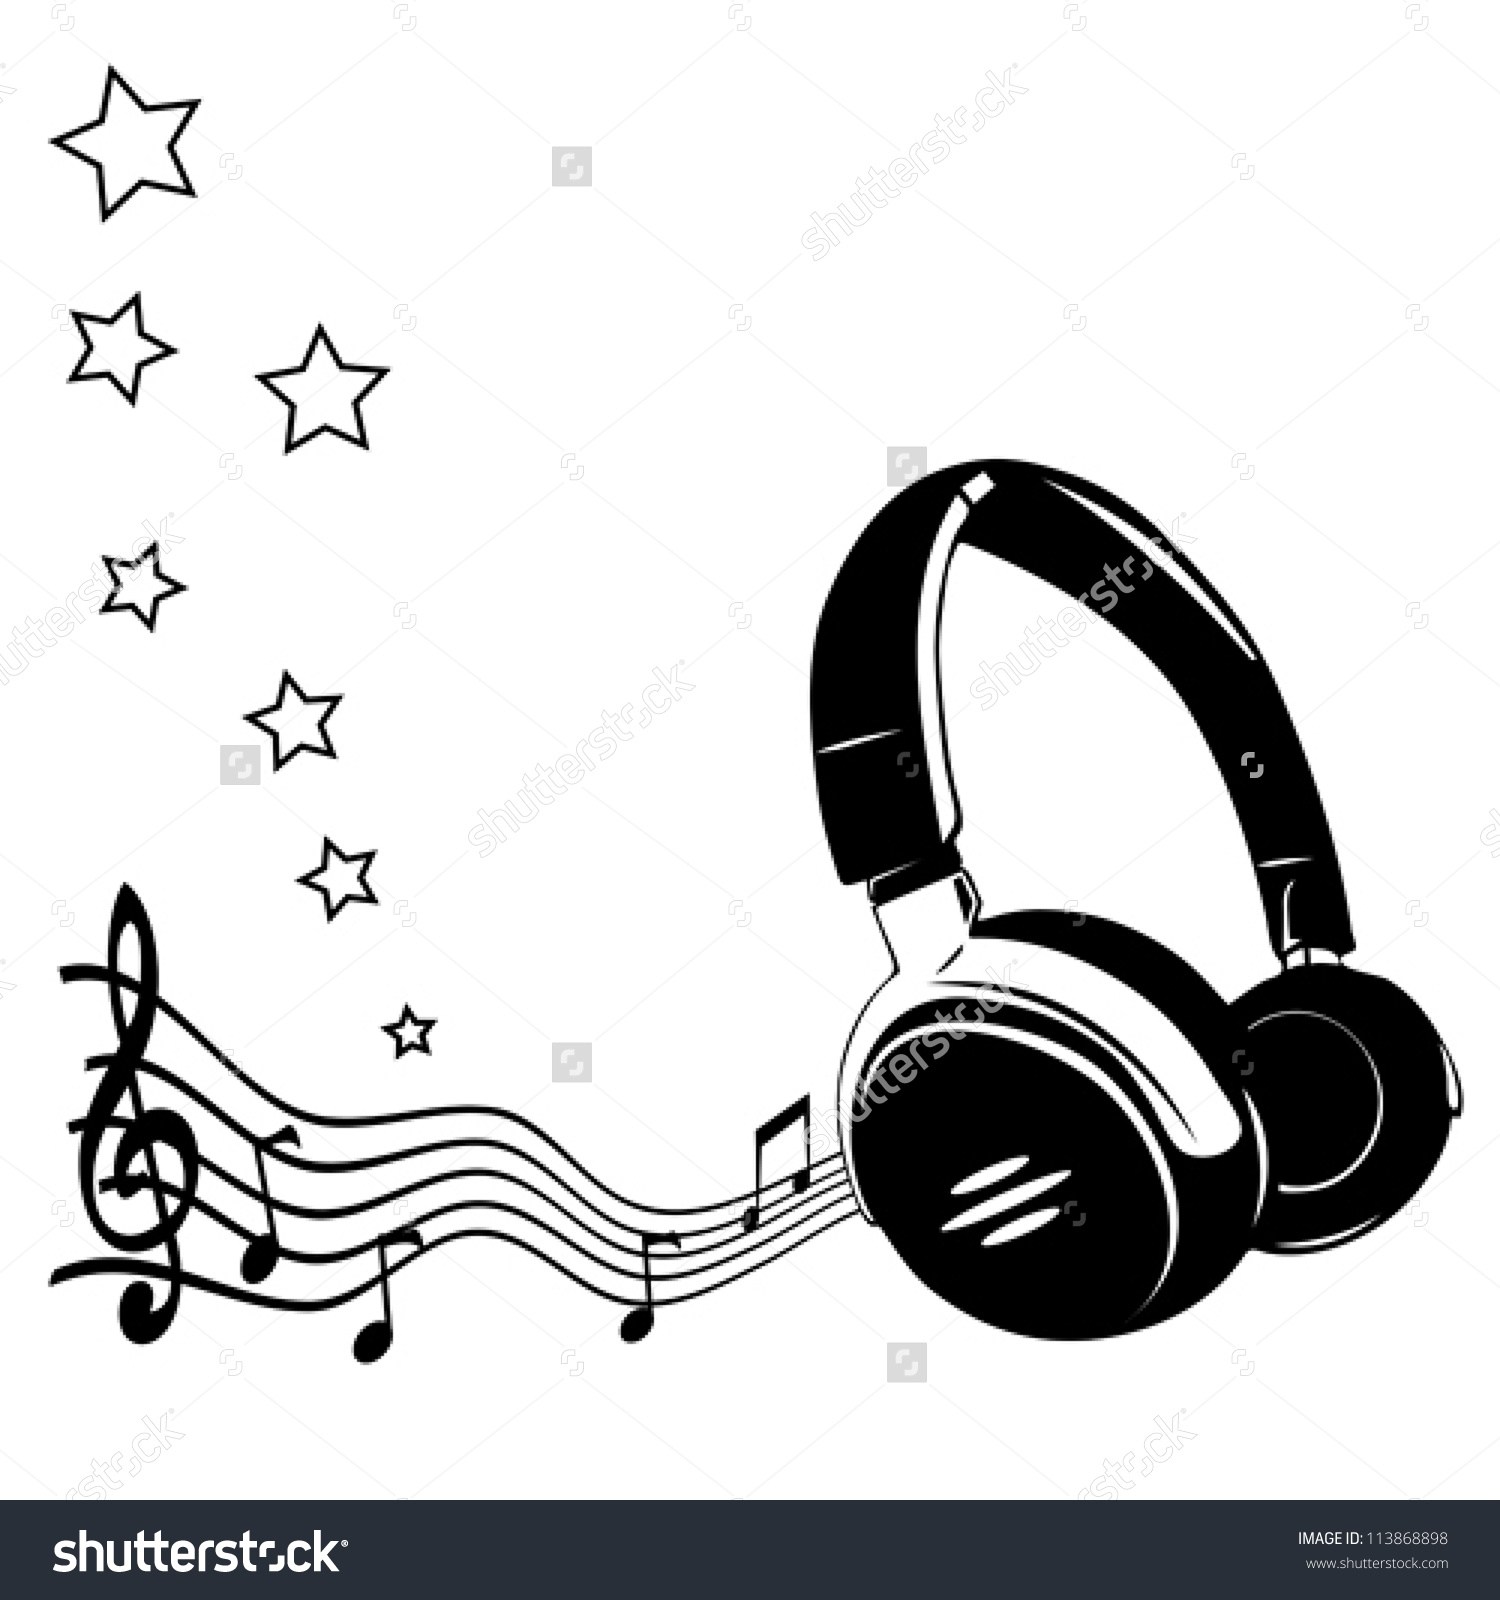 Beats clipart music headset Music Music With headphones notes